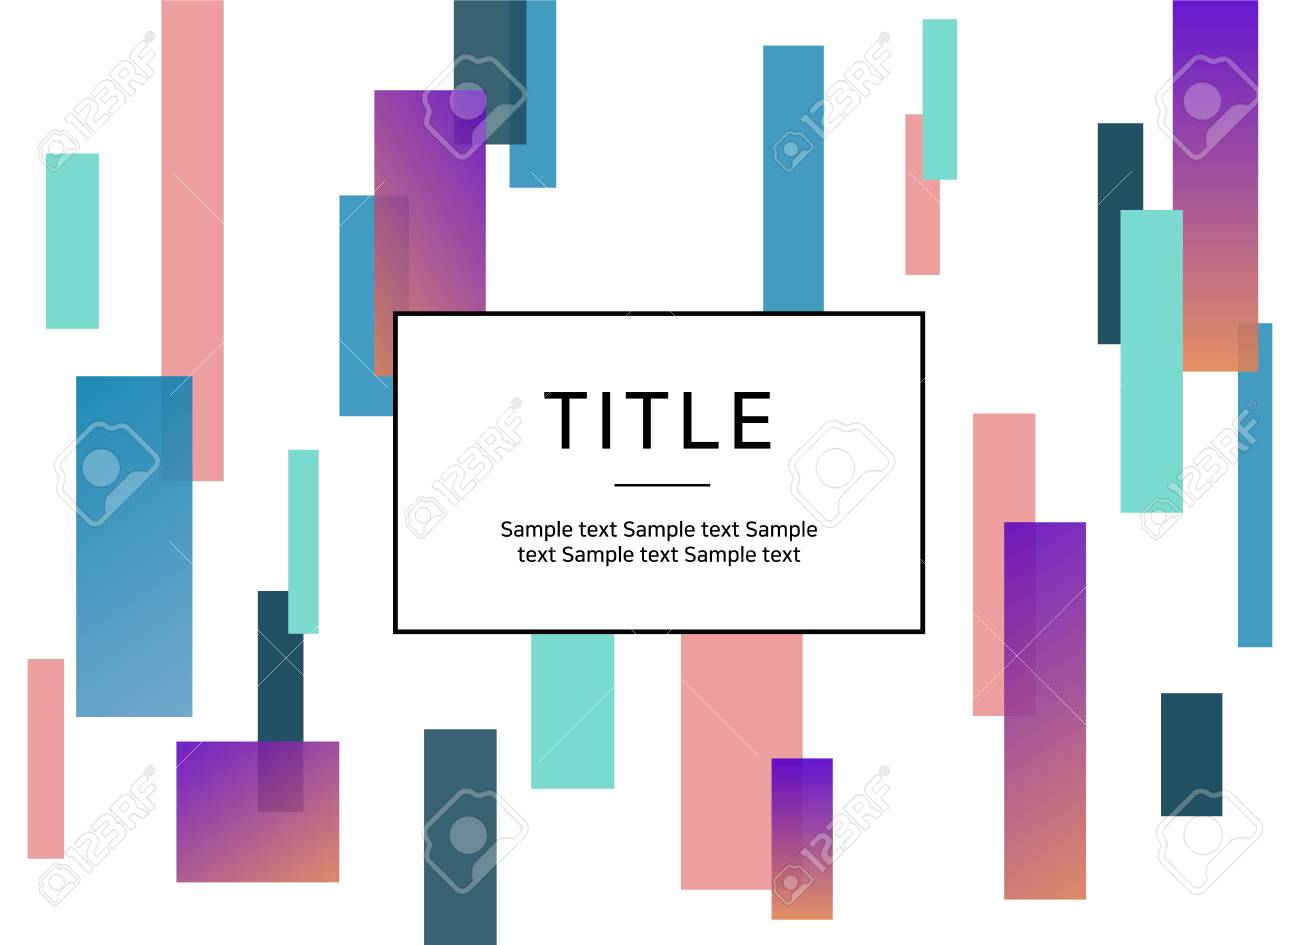 Presentation Cover Page Image With Abstract Geometric Pattern